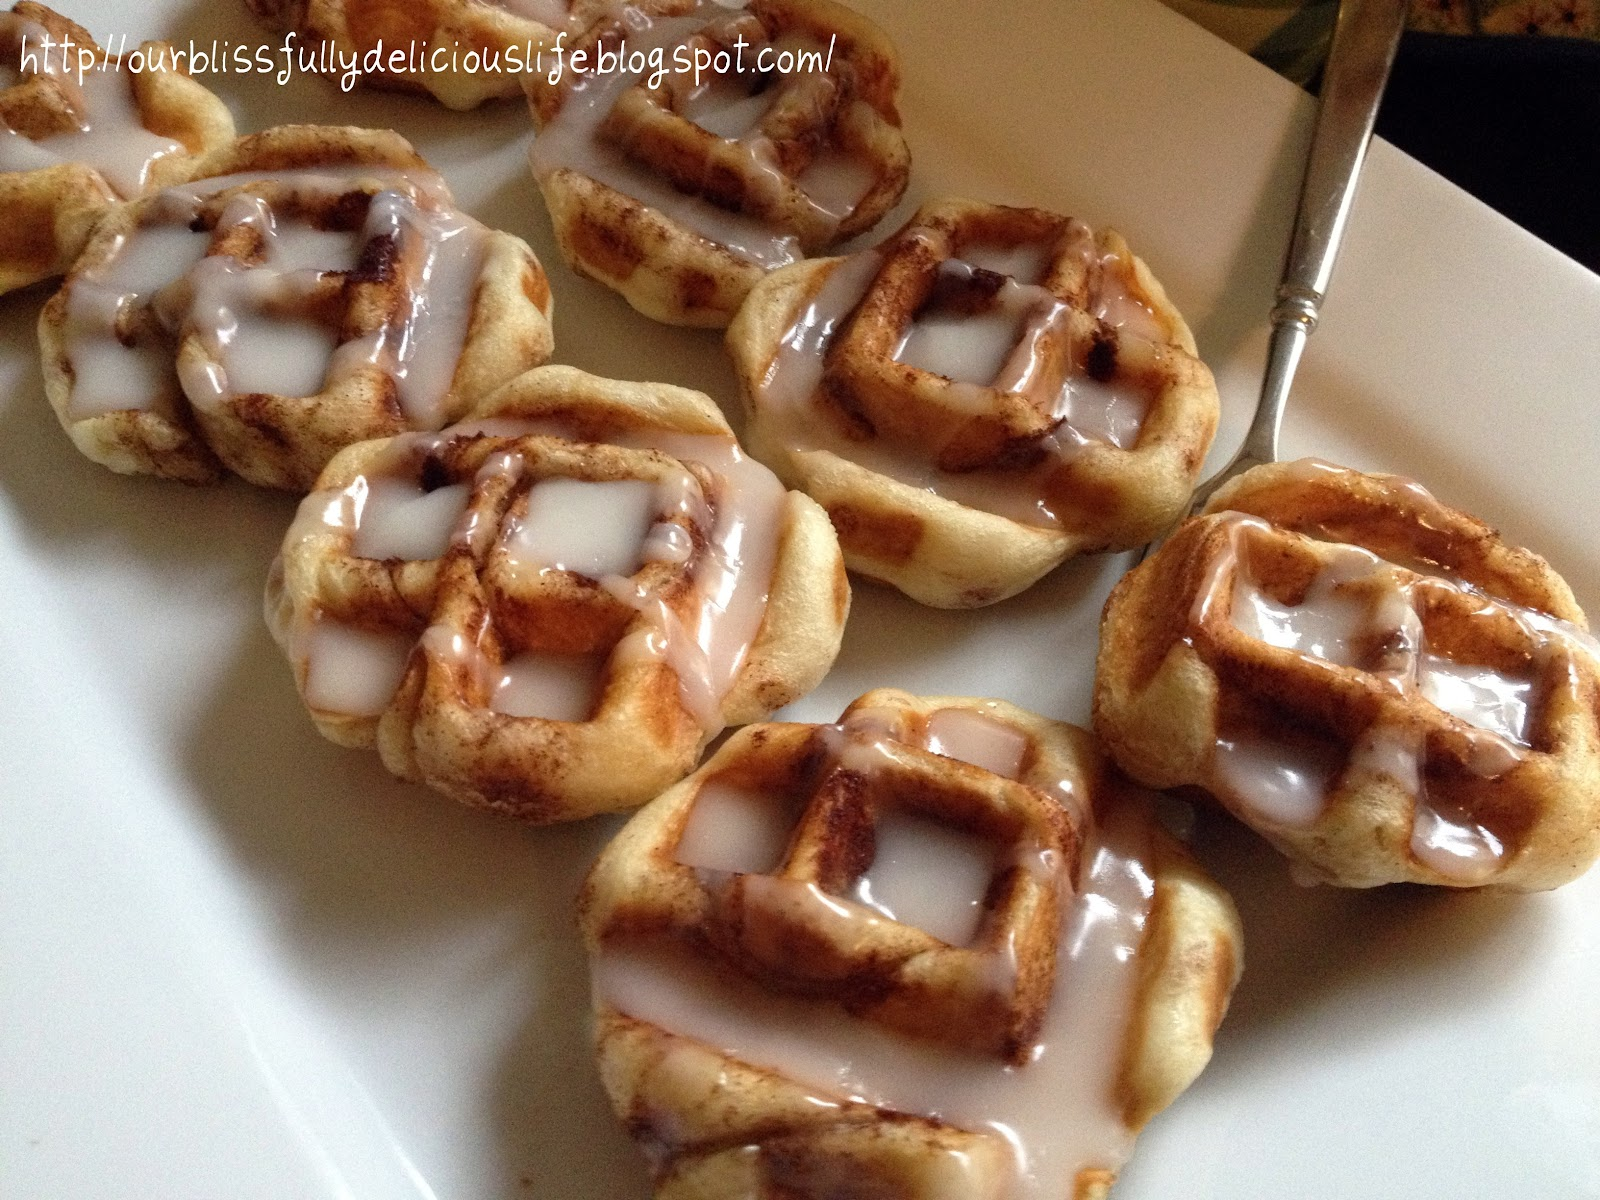 Our Blissfully Delicious Life: Cinnamon Roll Waffles